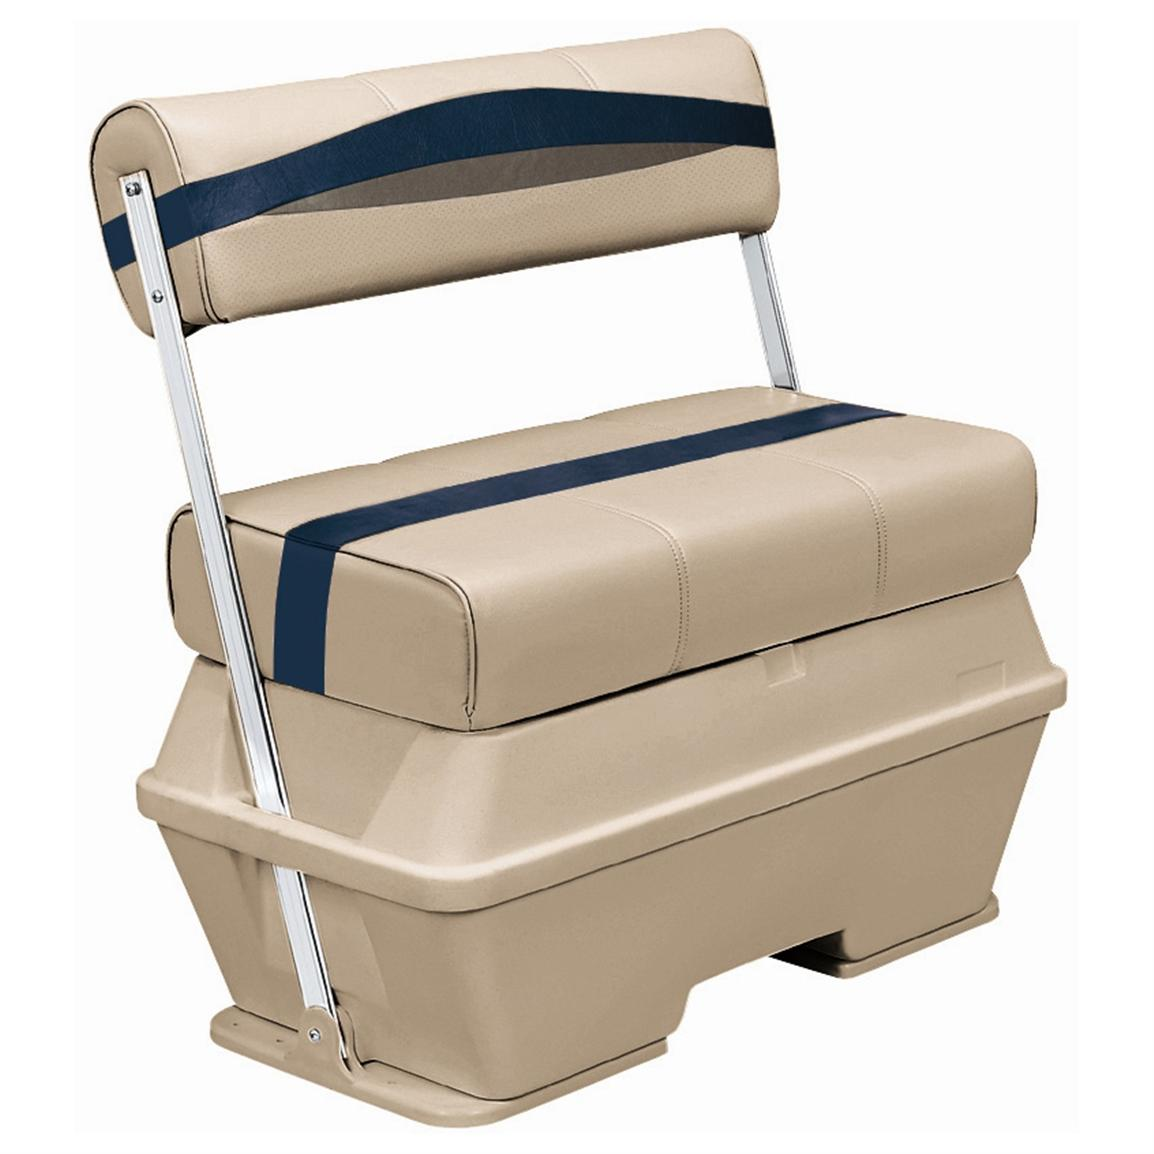 Wise® Premier Cooler Flip-Flop Pontoon Seat, Color D - Mocha Java Punch / Midnight / Rock Salt